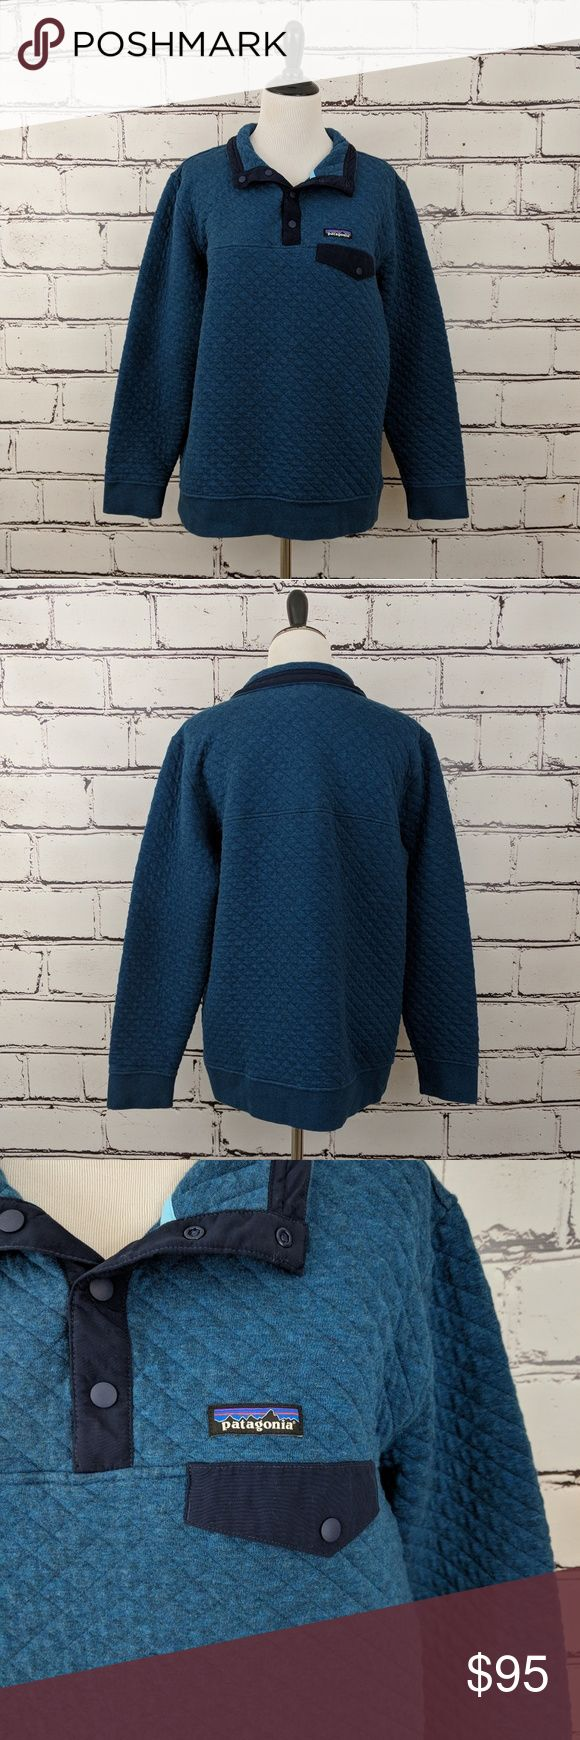 """Patagonia Quilted Snap-T Pullover! """"Big Sur Blue"""" colored quilted Patagonia pullover. Perfect, like new condition with no flaws! Patagonia Tops Sweatshirts & Hoodies"""